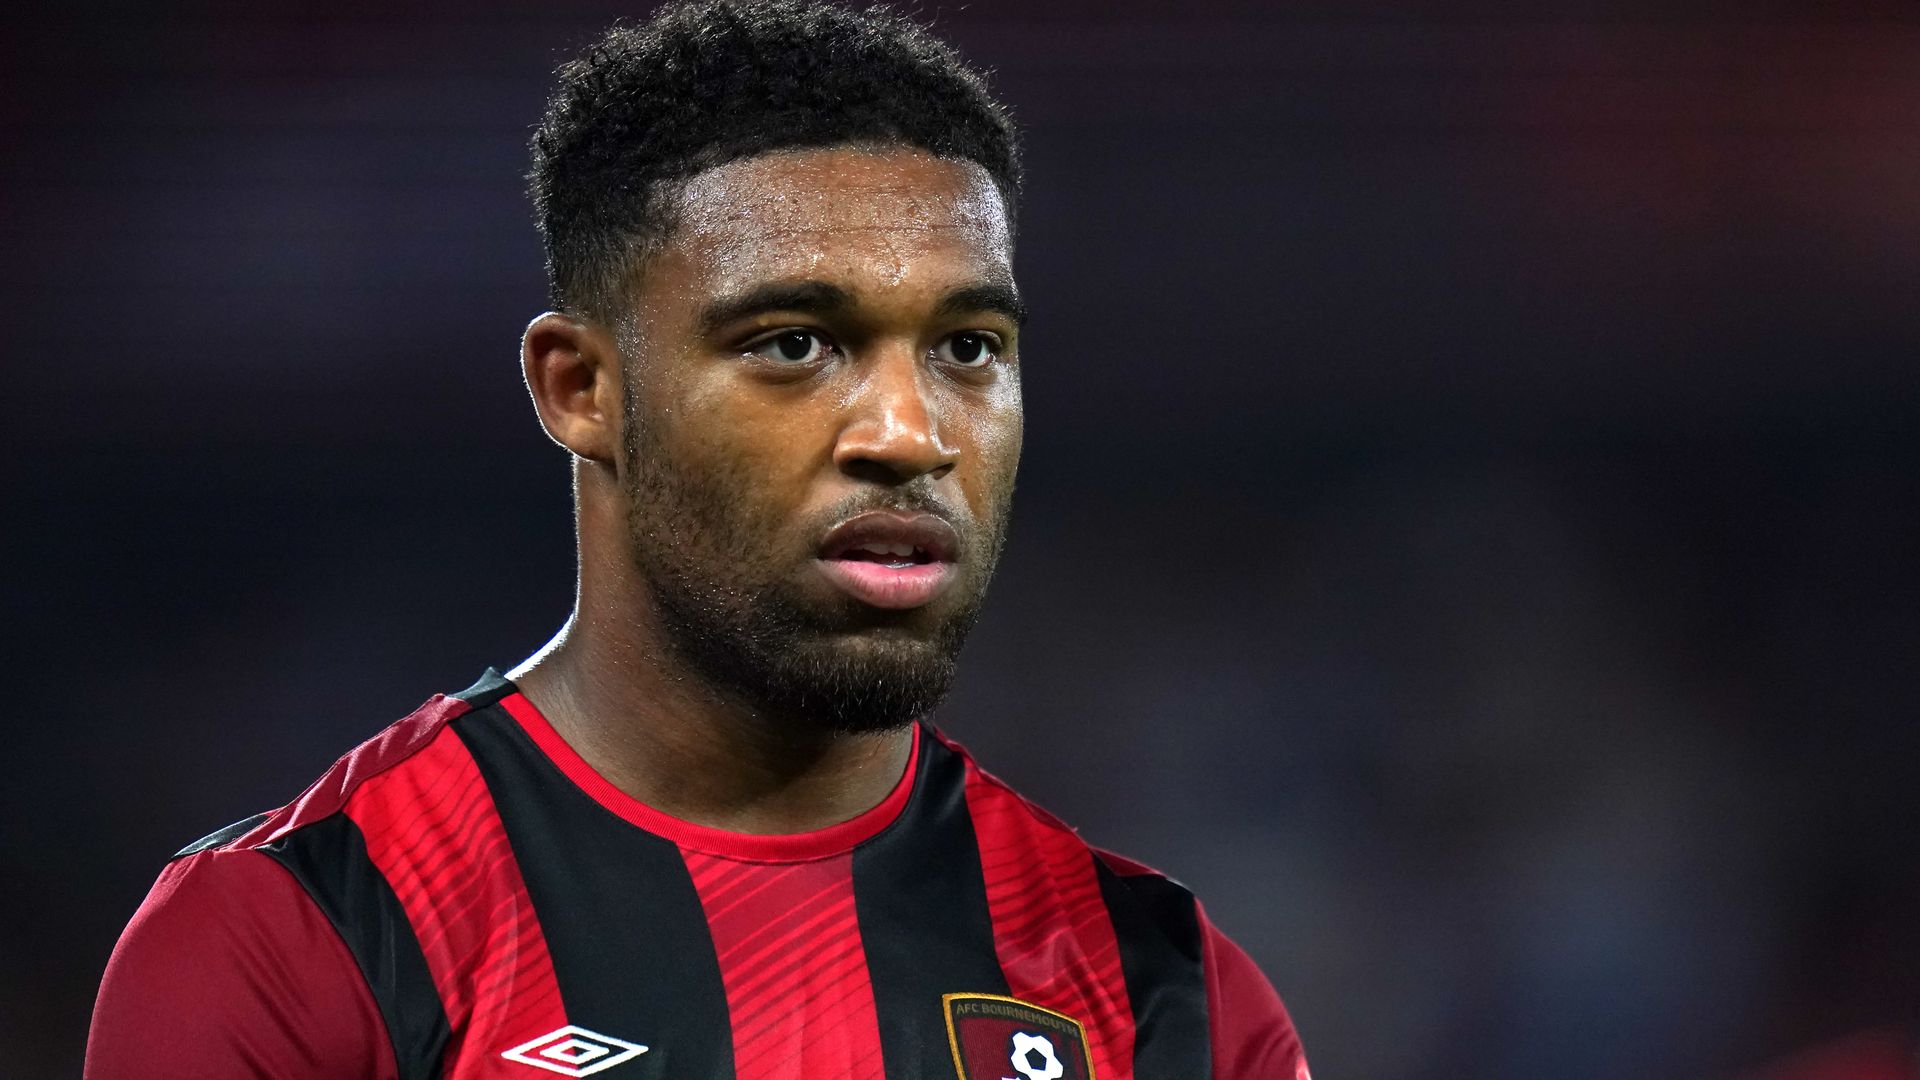 Ibe in 'dark place' with depression